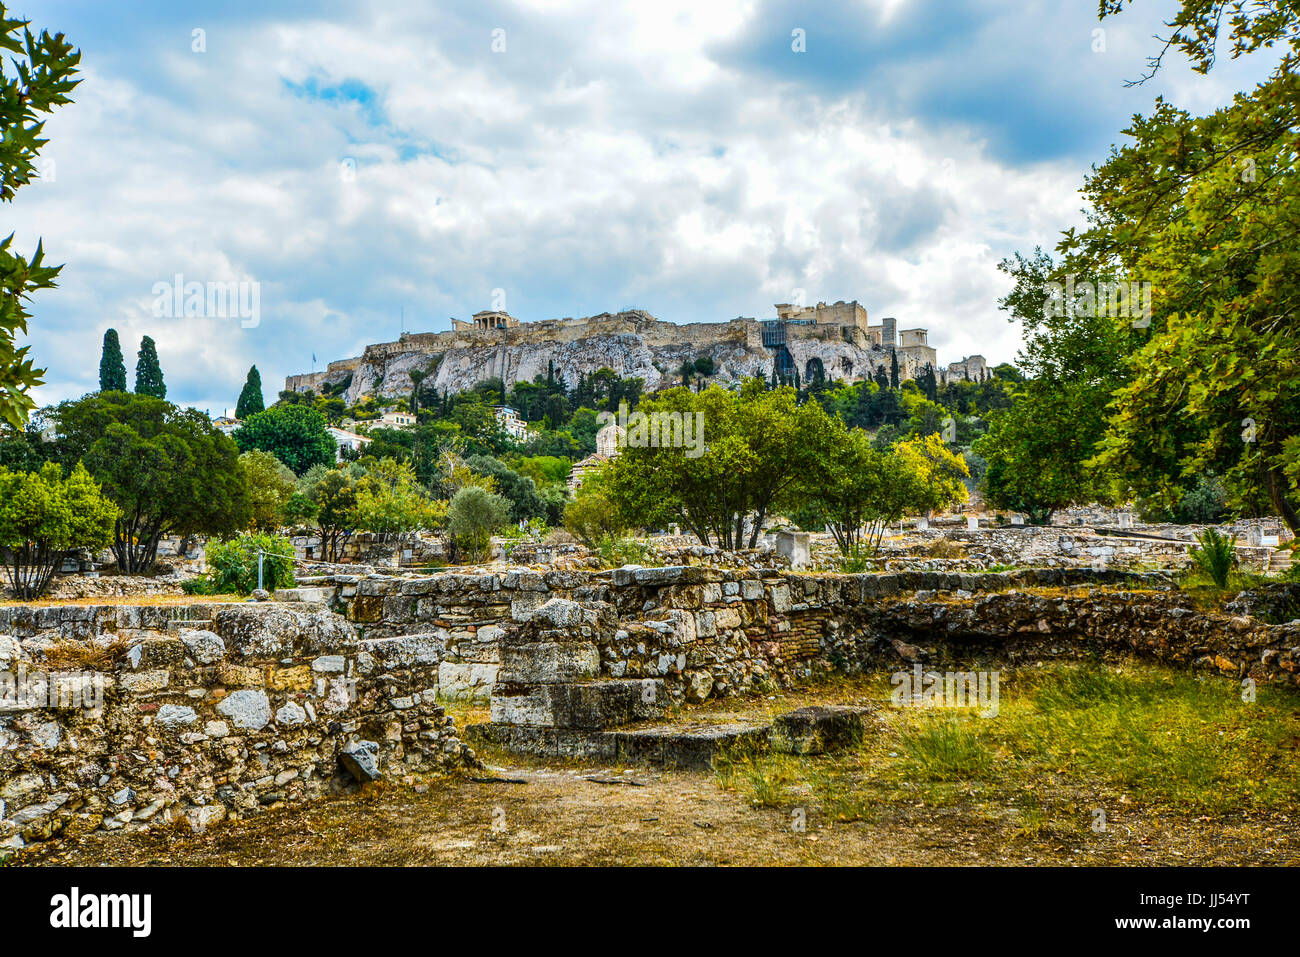 Athens Acropolis Hill. The Parthenon and Acropolis from the agora below in Athens Greece Stock Photo